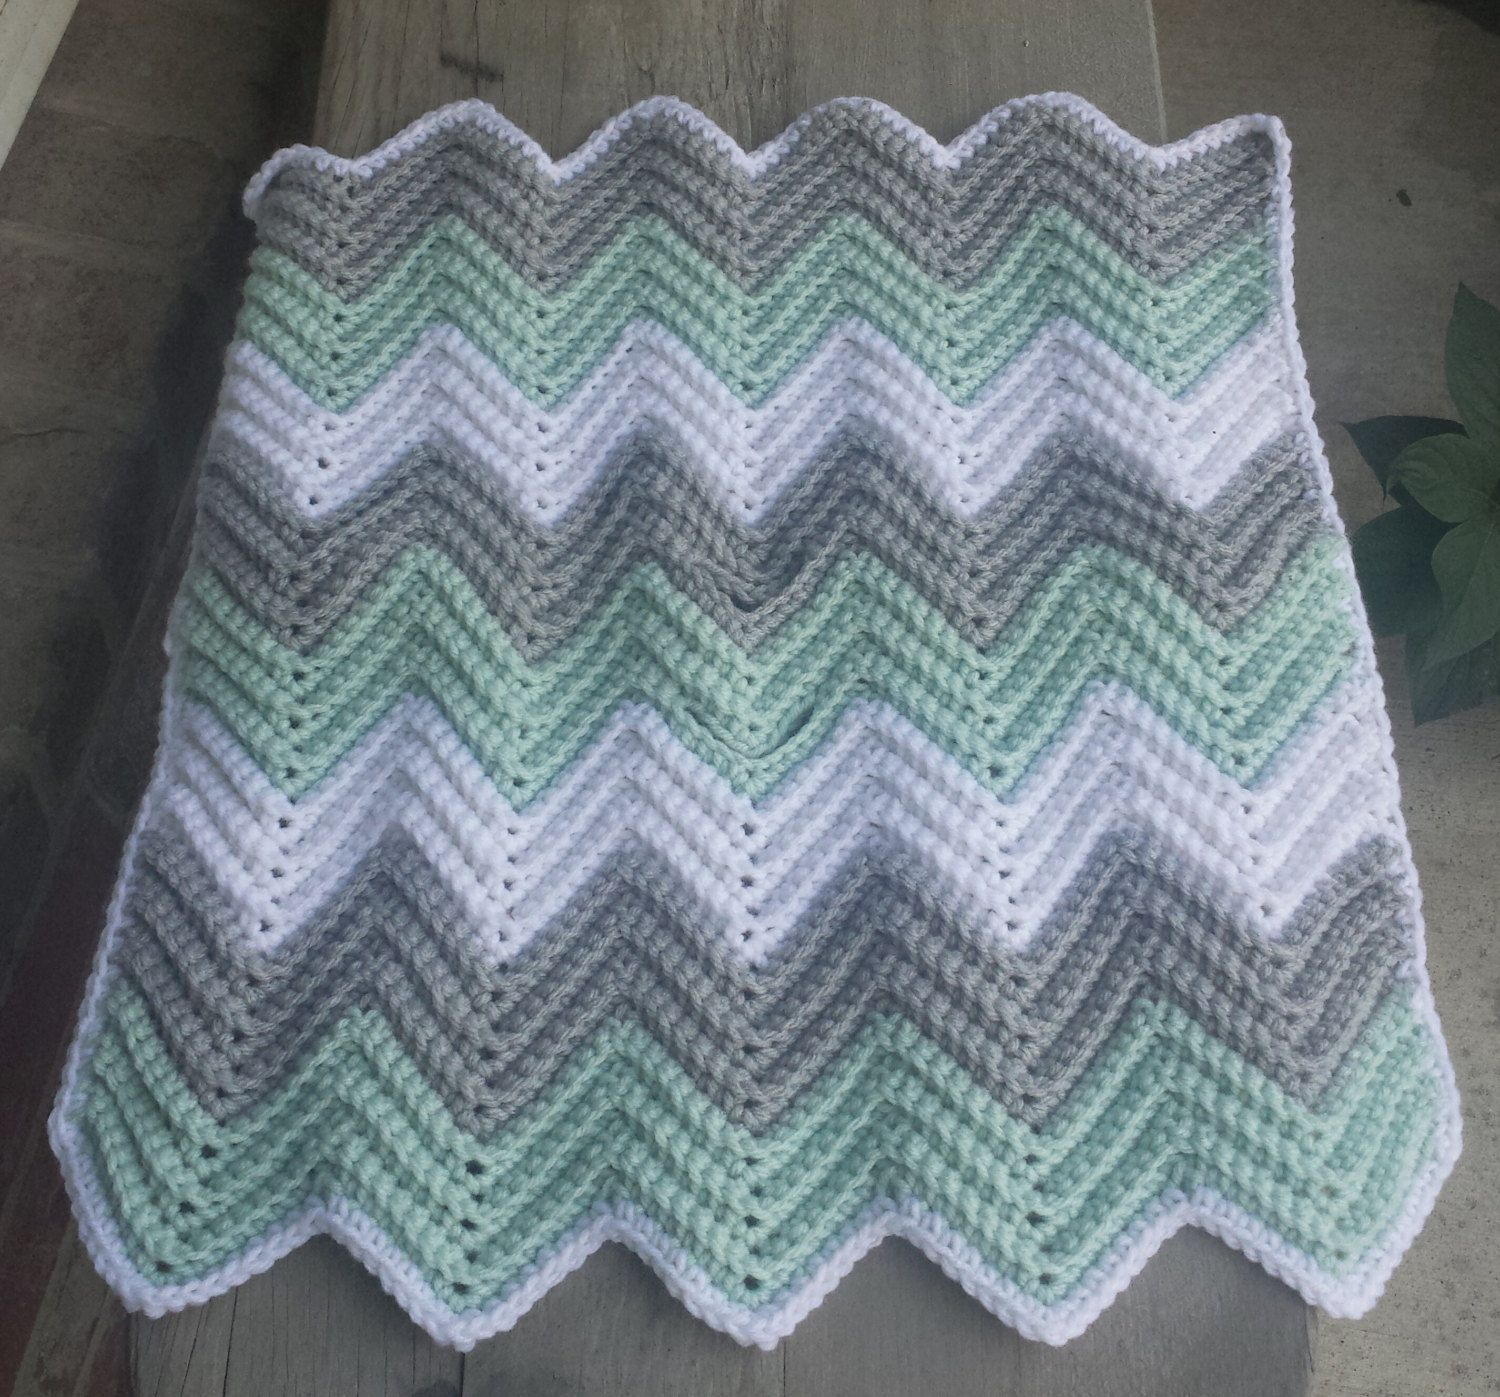 Crochet chevron baby blanket with holes for car seat straps baby crochet crochet chevron baby blanket with holes for car seat straps bankloansurffo Gallery